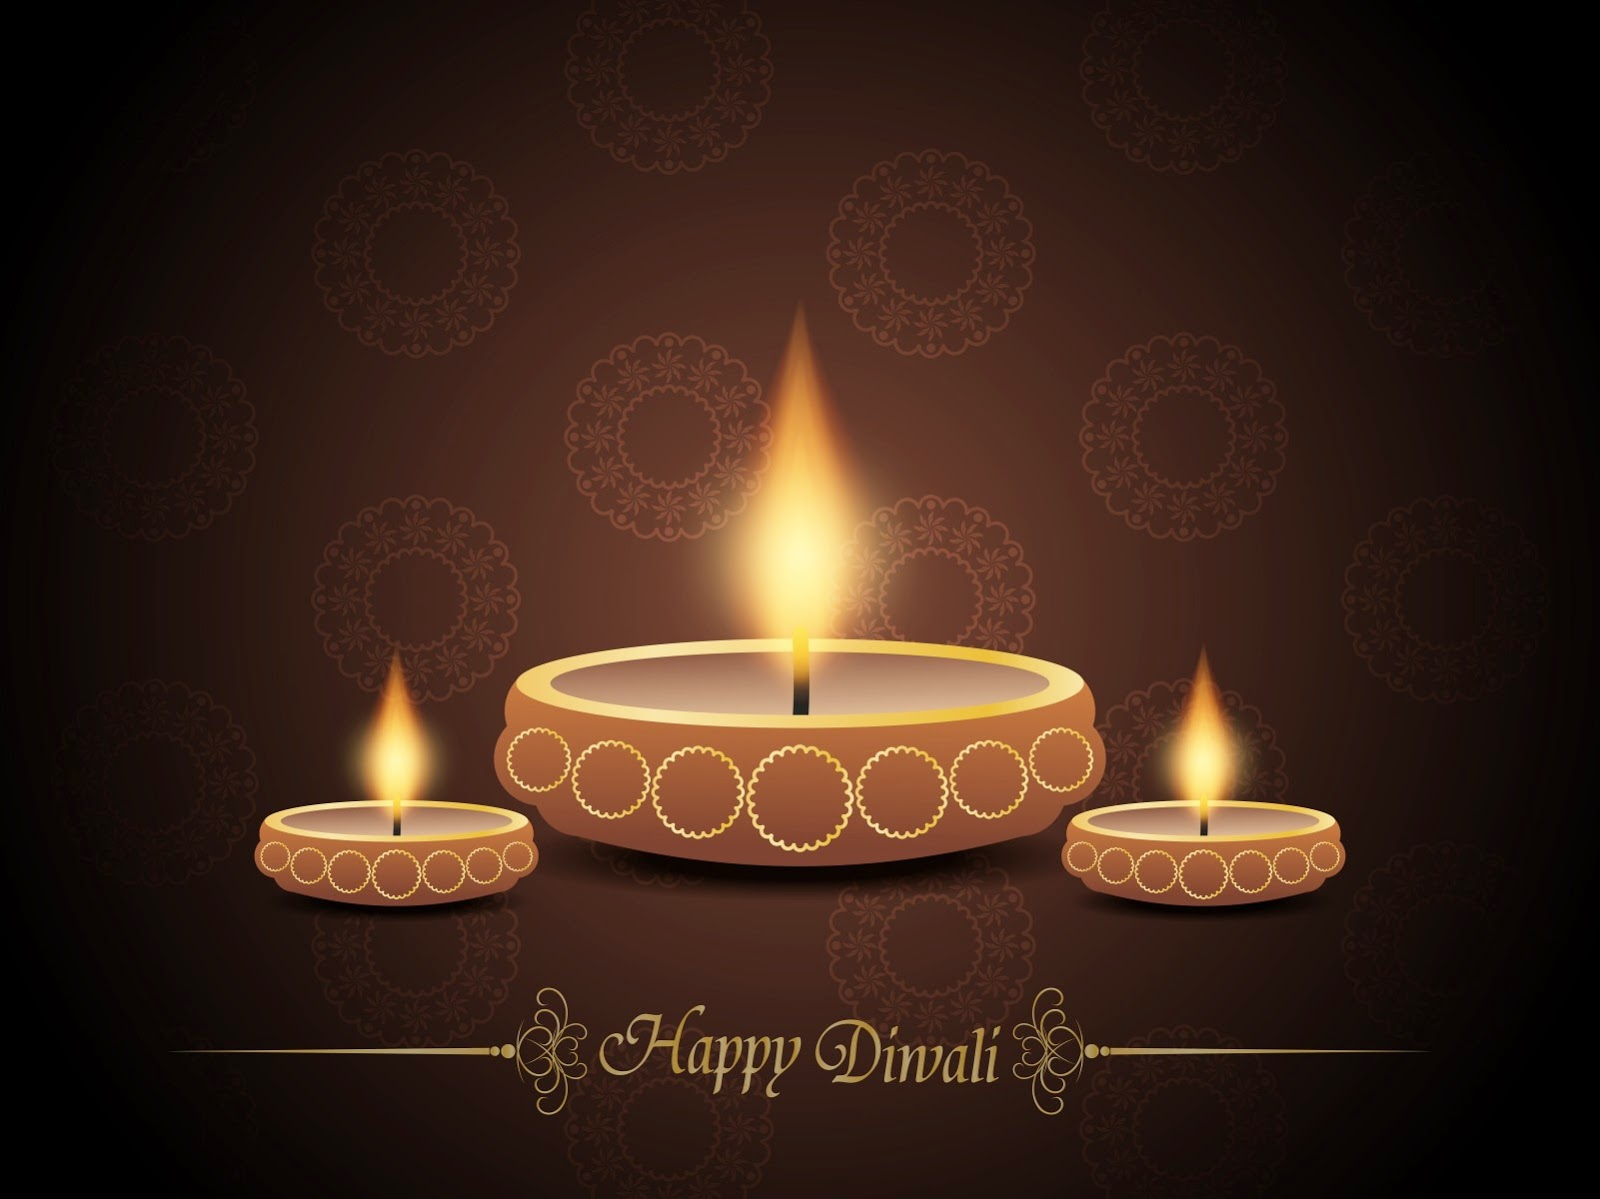 Top 100 happydeepavali diwali images wallpapers pictures happy diwali 2017 images m4hsunfo